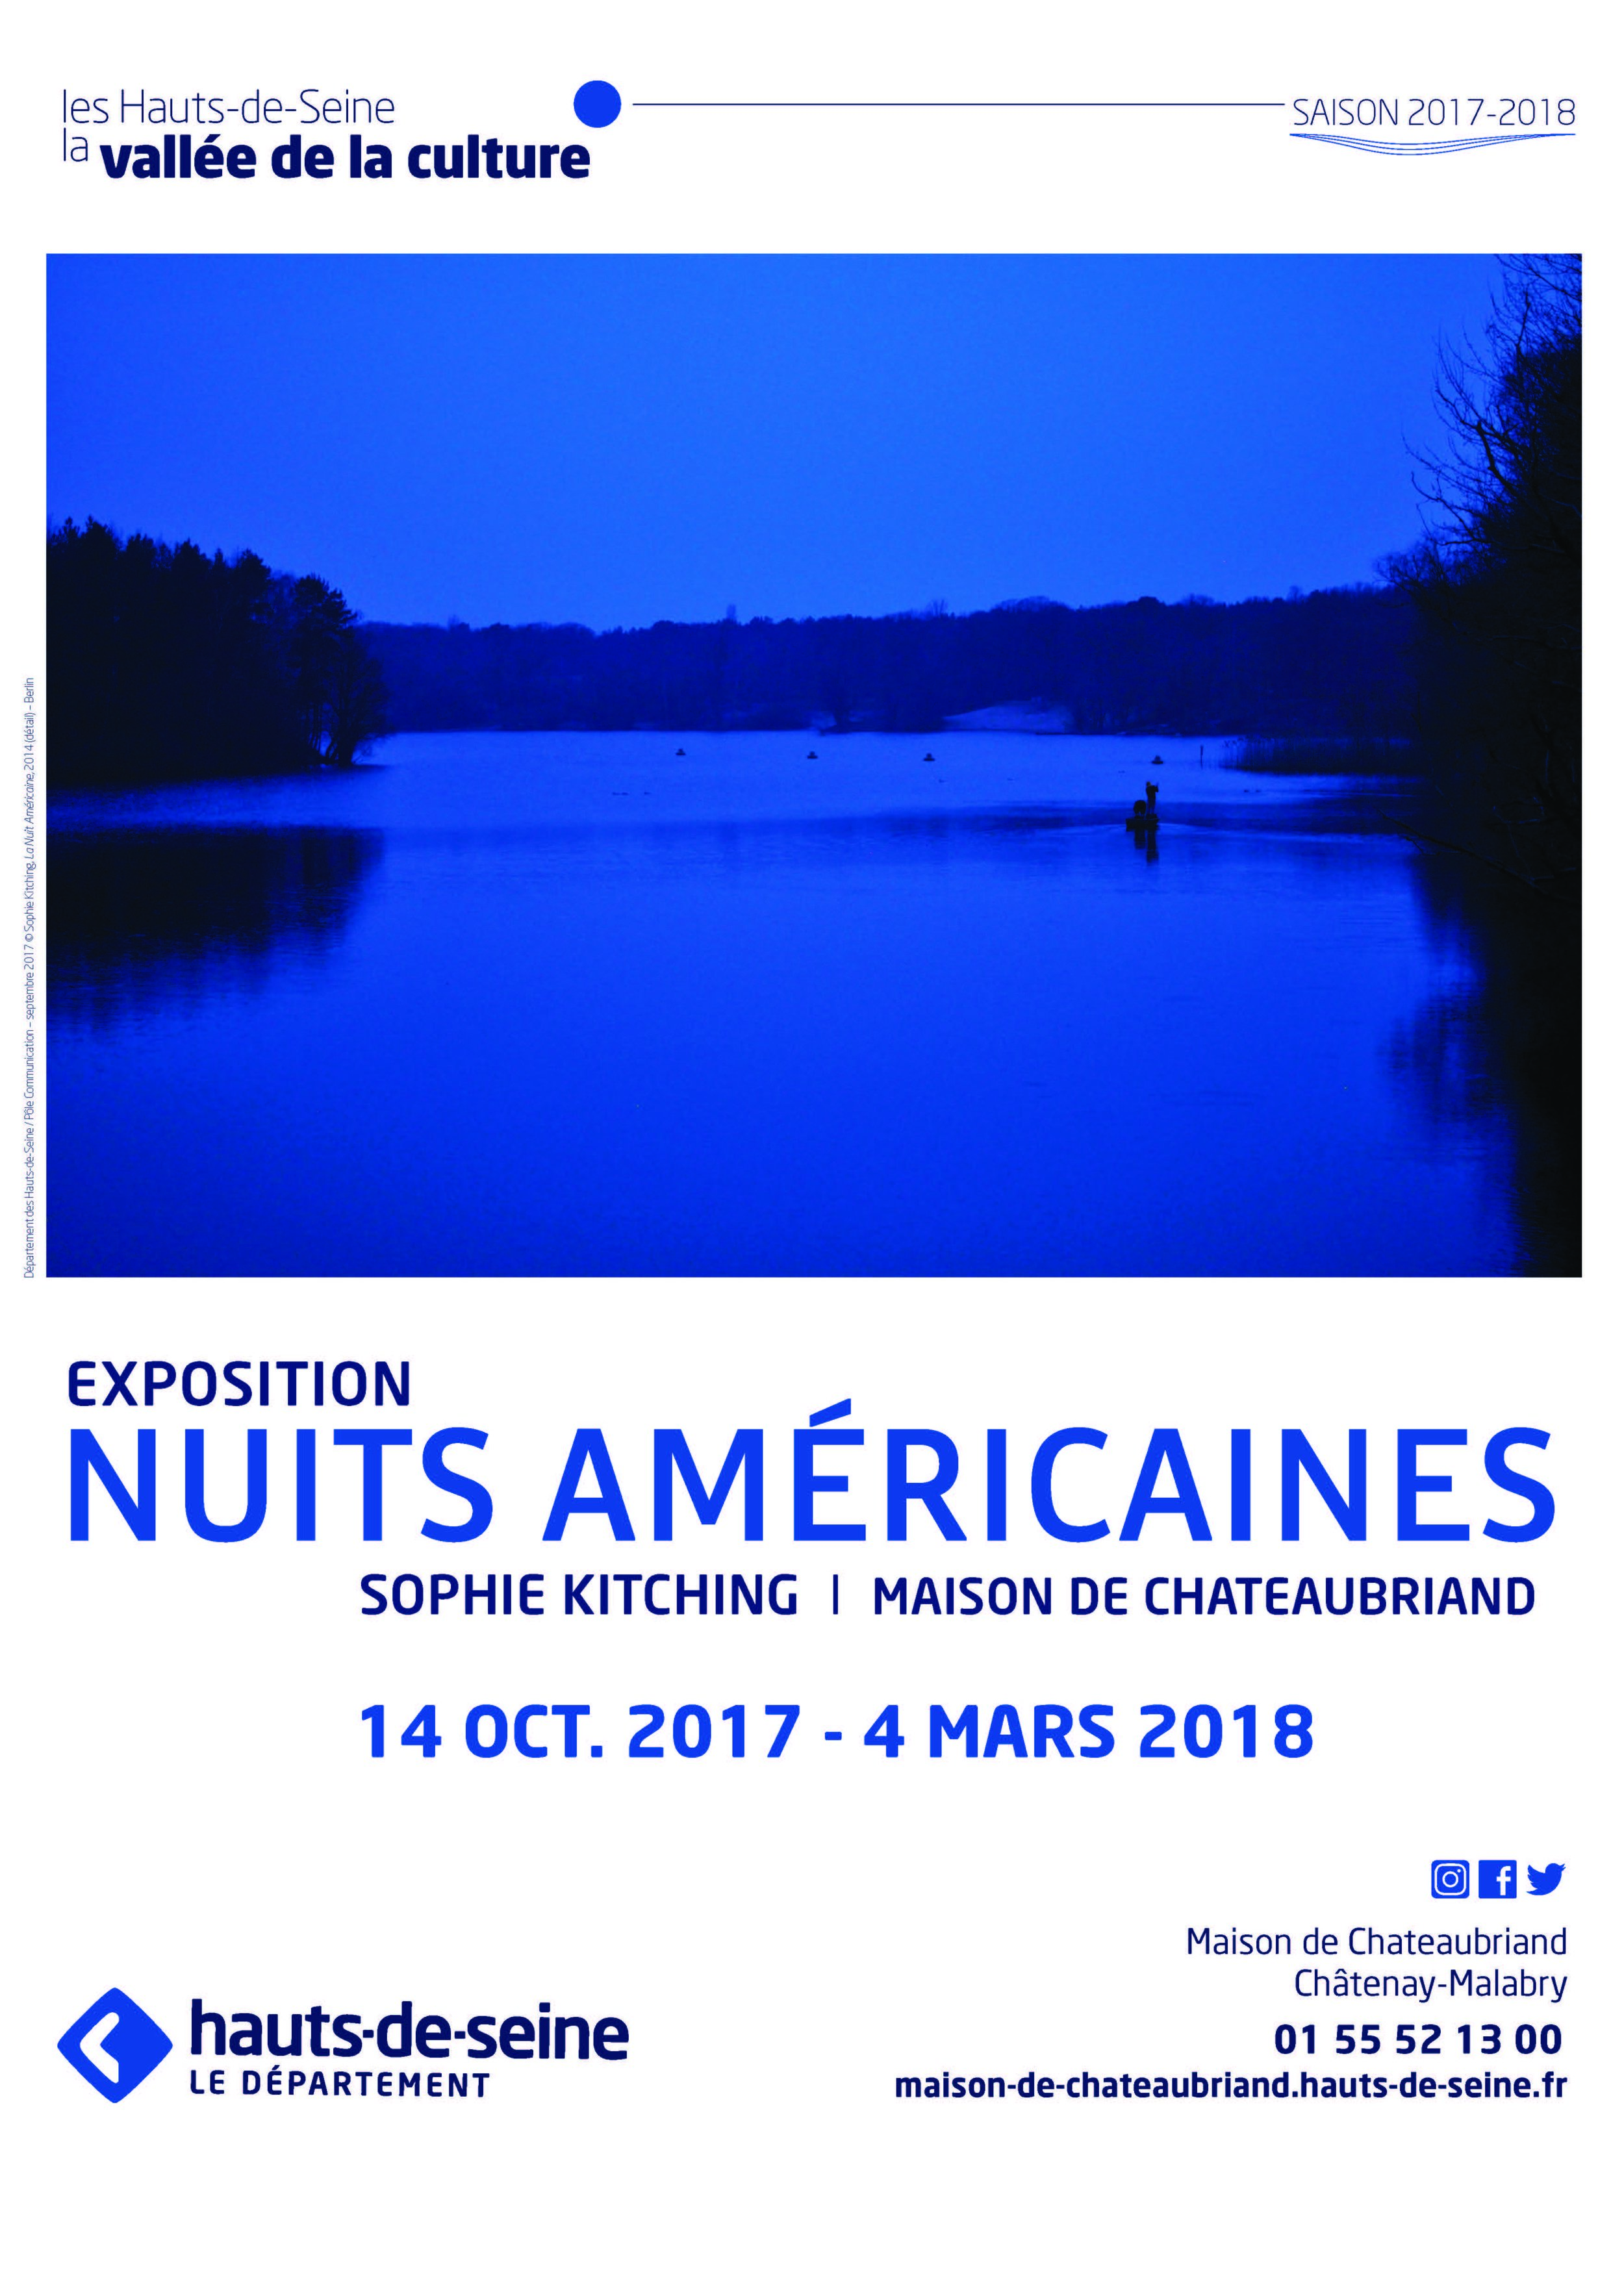 ExpoKitching-Affiche2-A3-ob.jpg